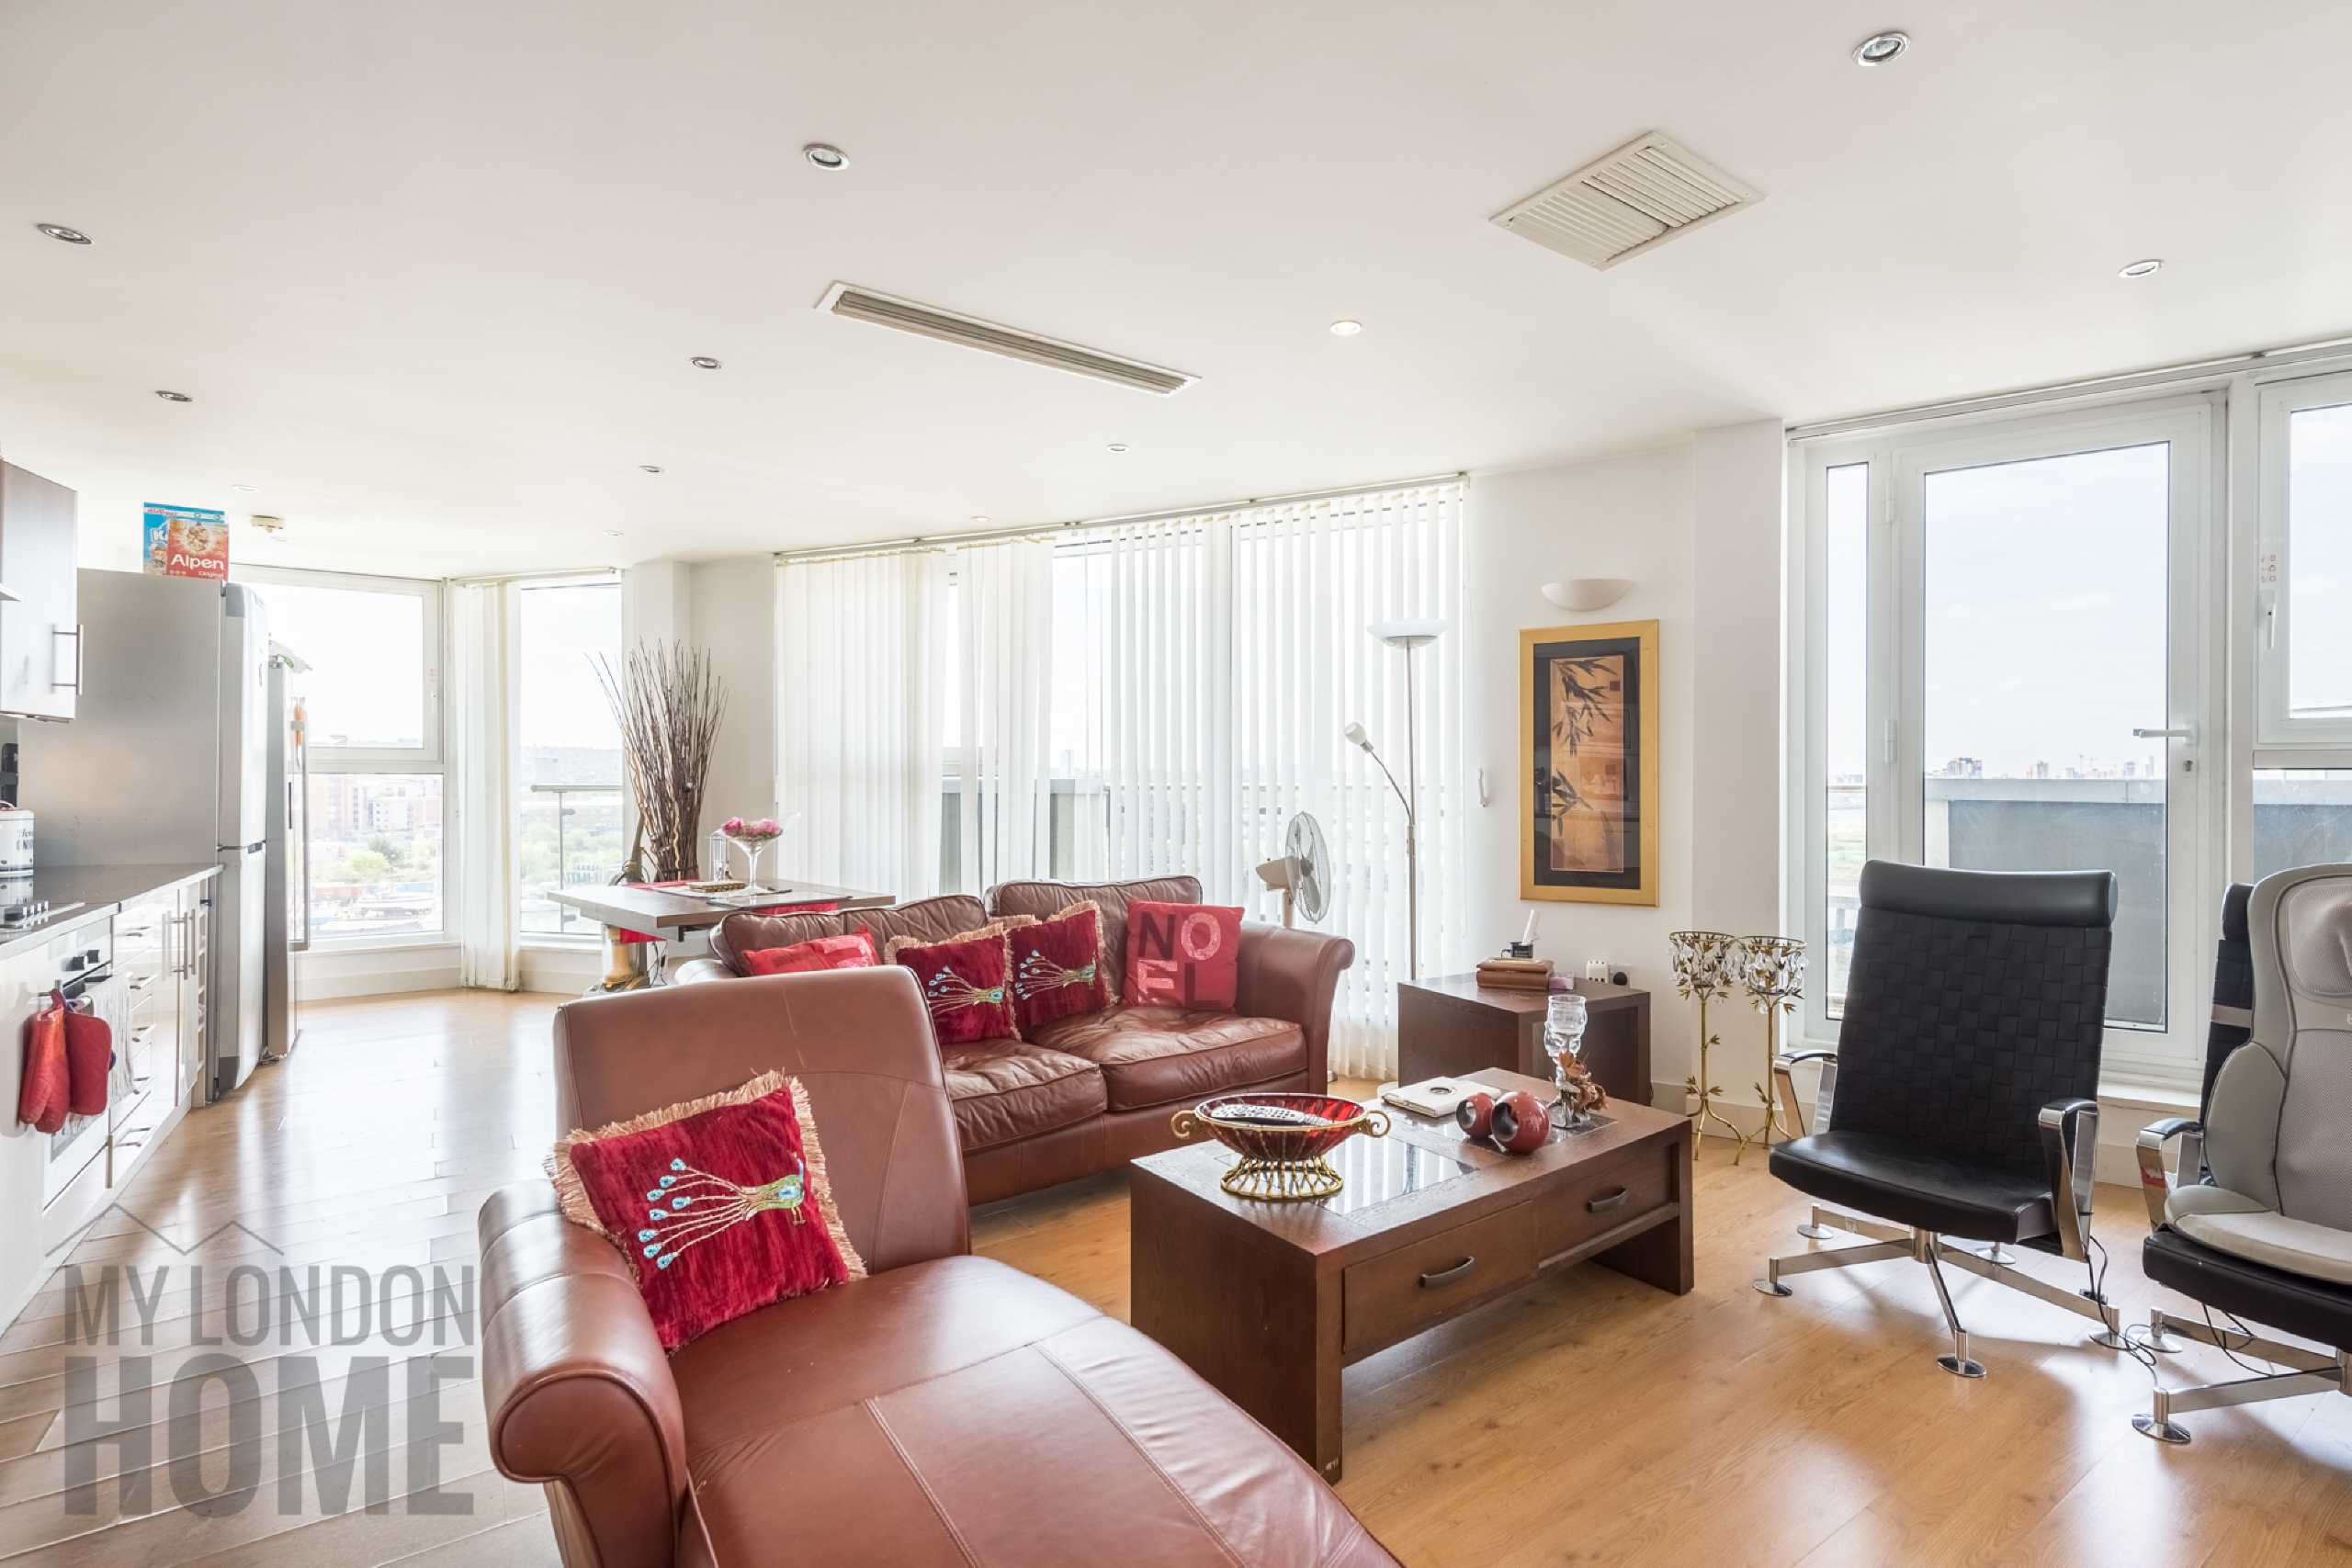 3 Bedrooms Apartment Flat for sale in The Mast, Albert Basin Way, Royal Albert Docks, Royal Docks, E16